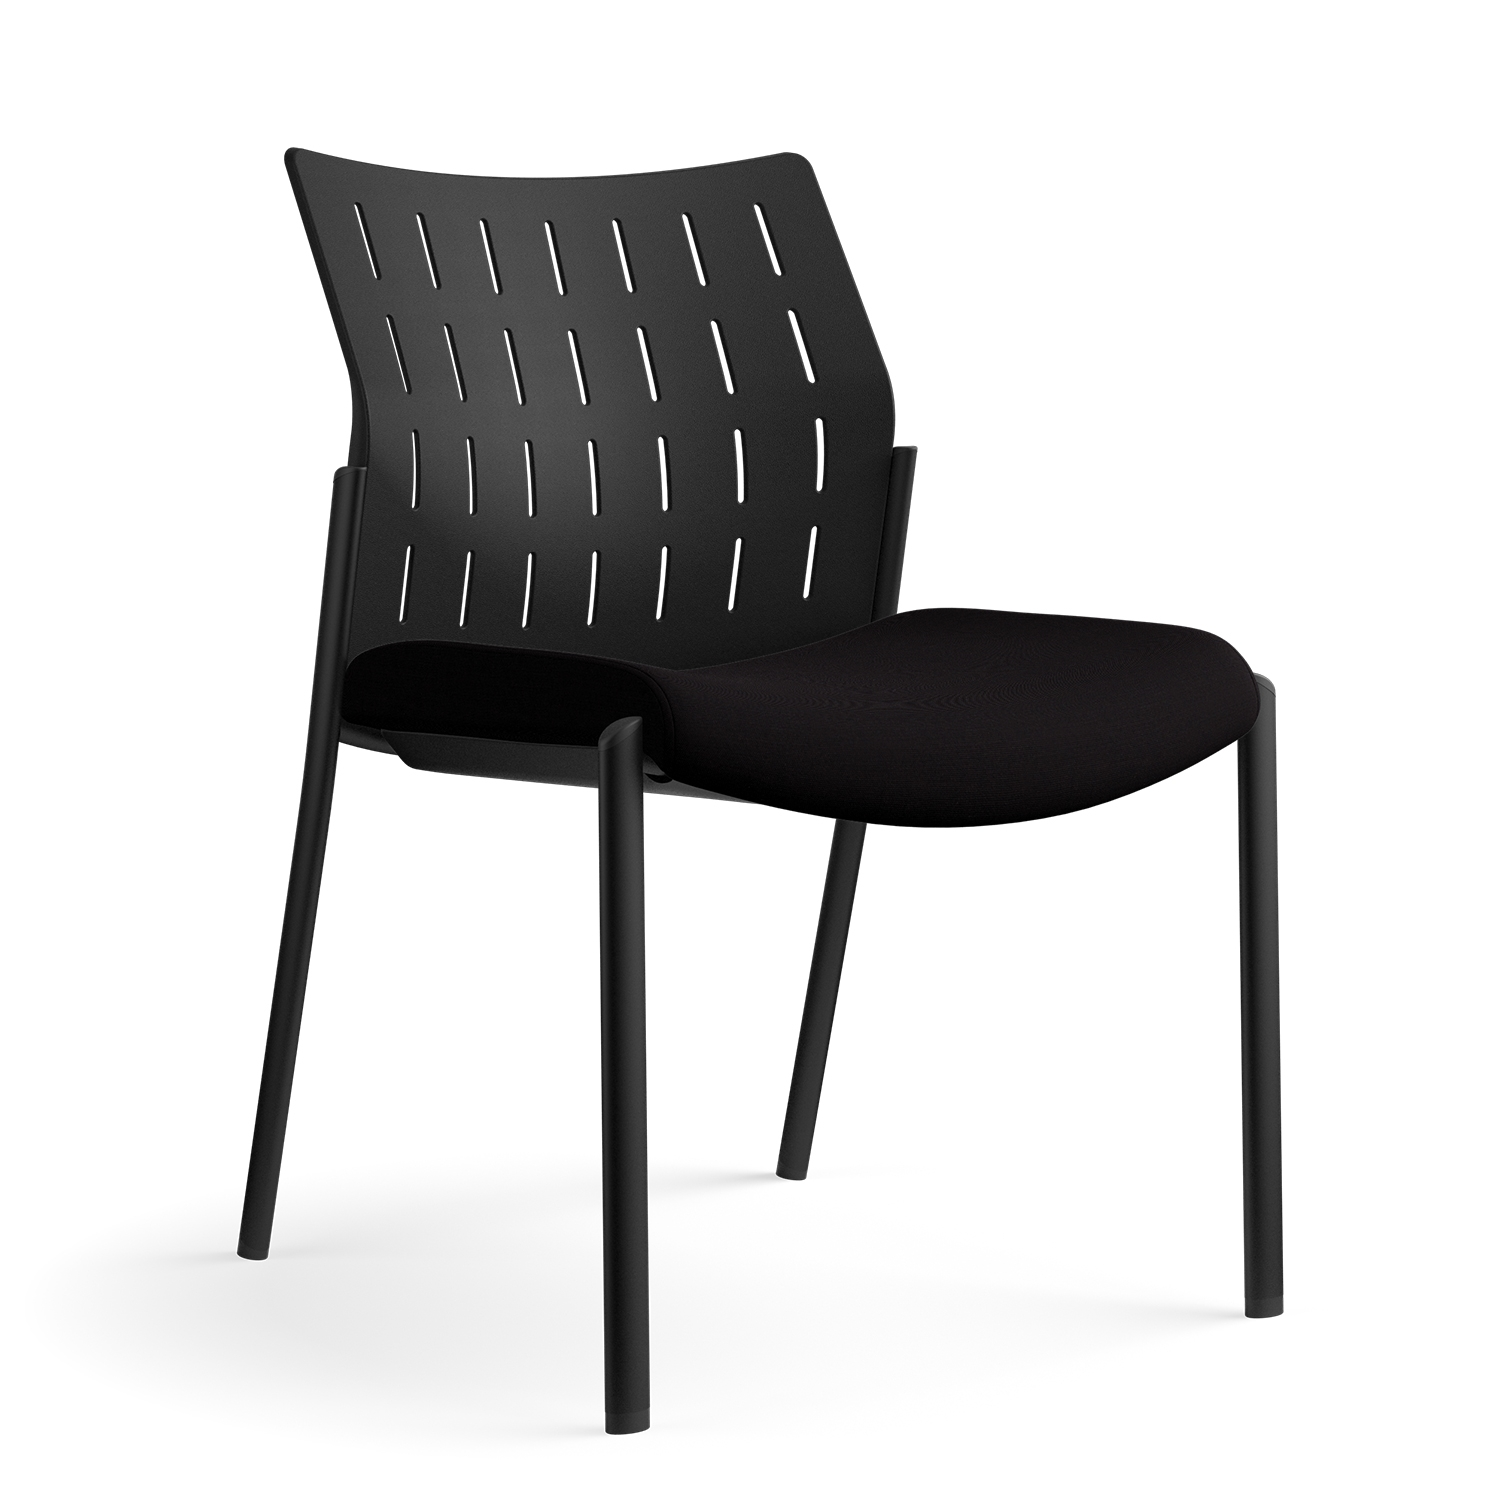 Achieve Side Guest Chair Seating Sitonit Seating